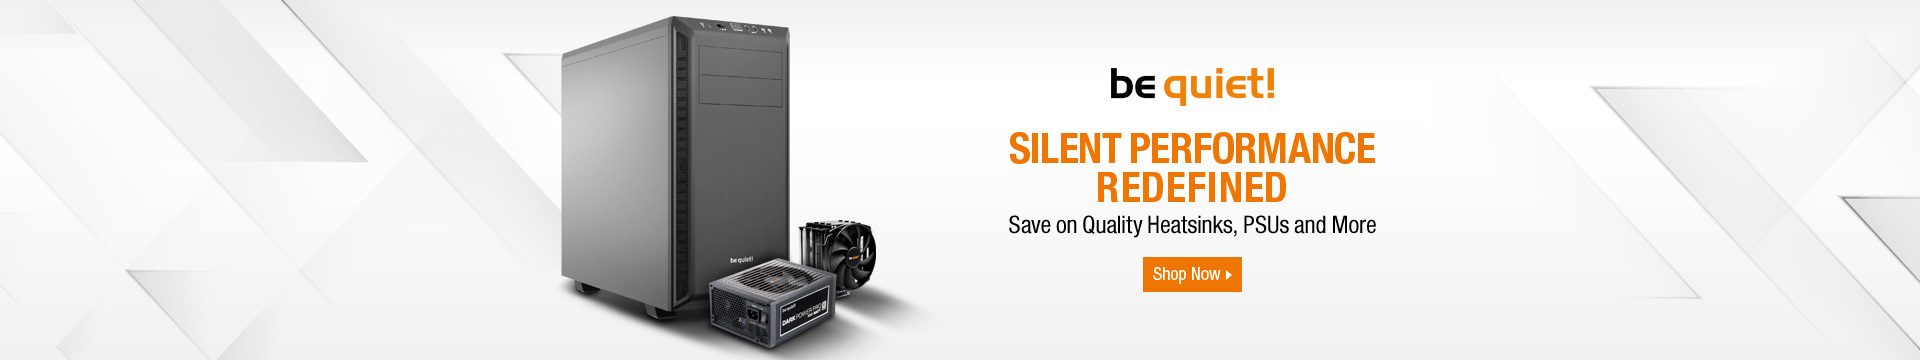 SILENT PERFORMANCE REDEFINED